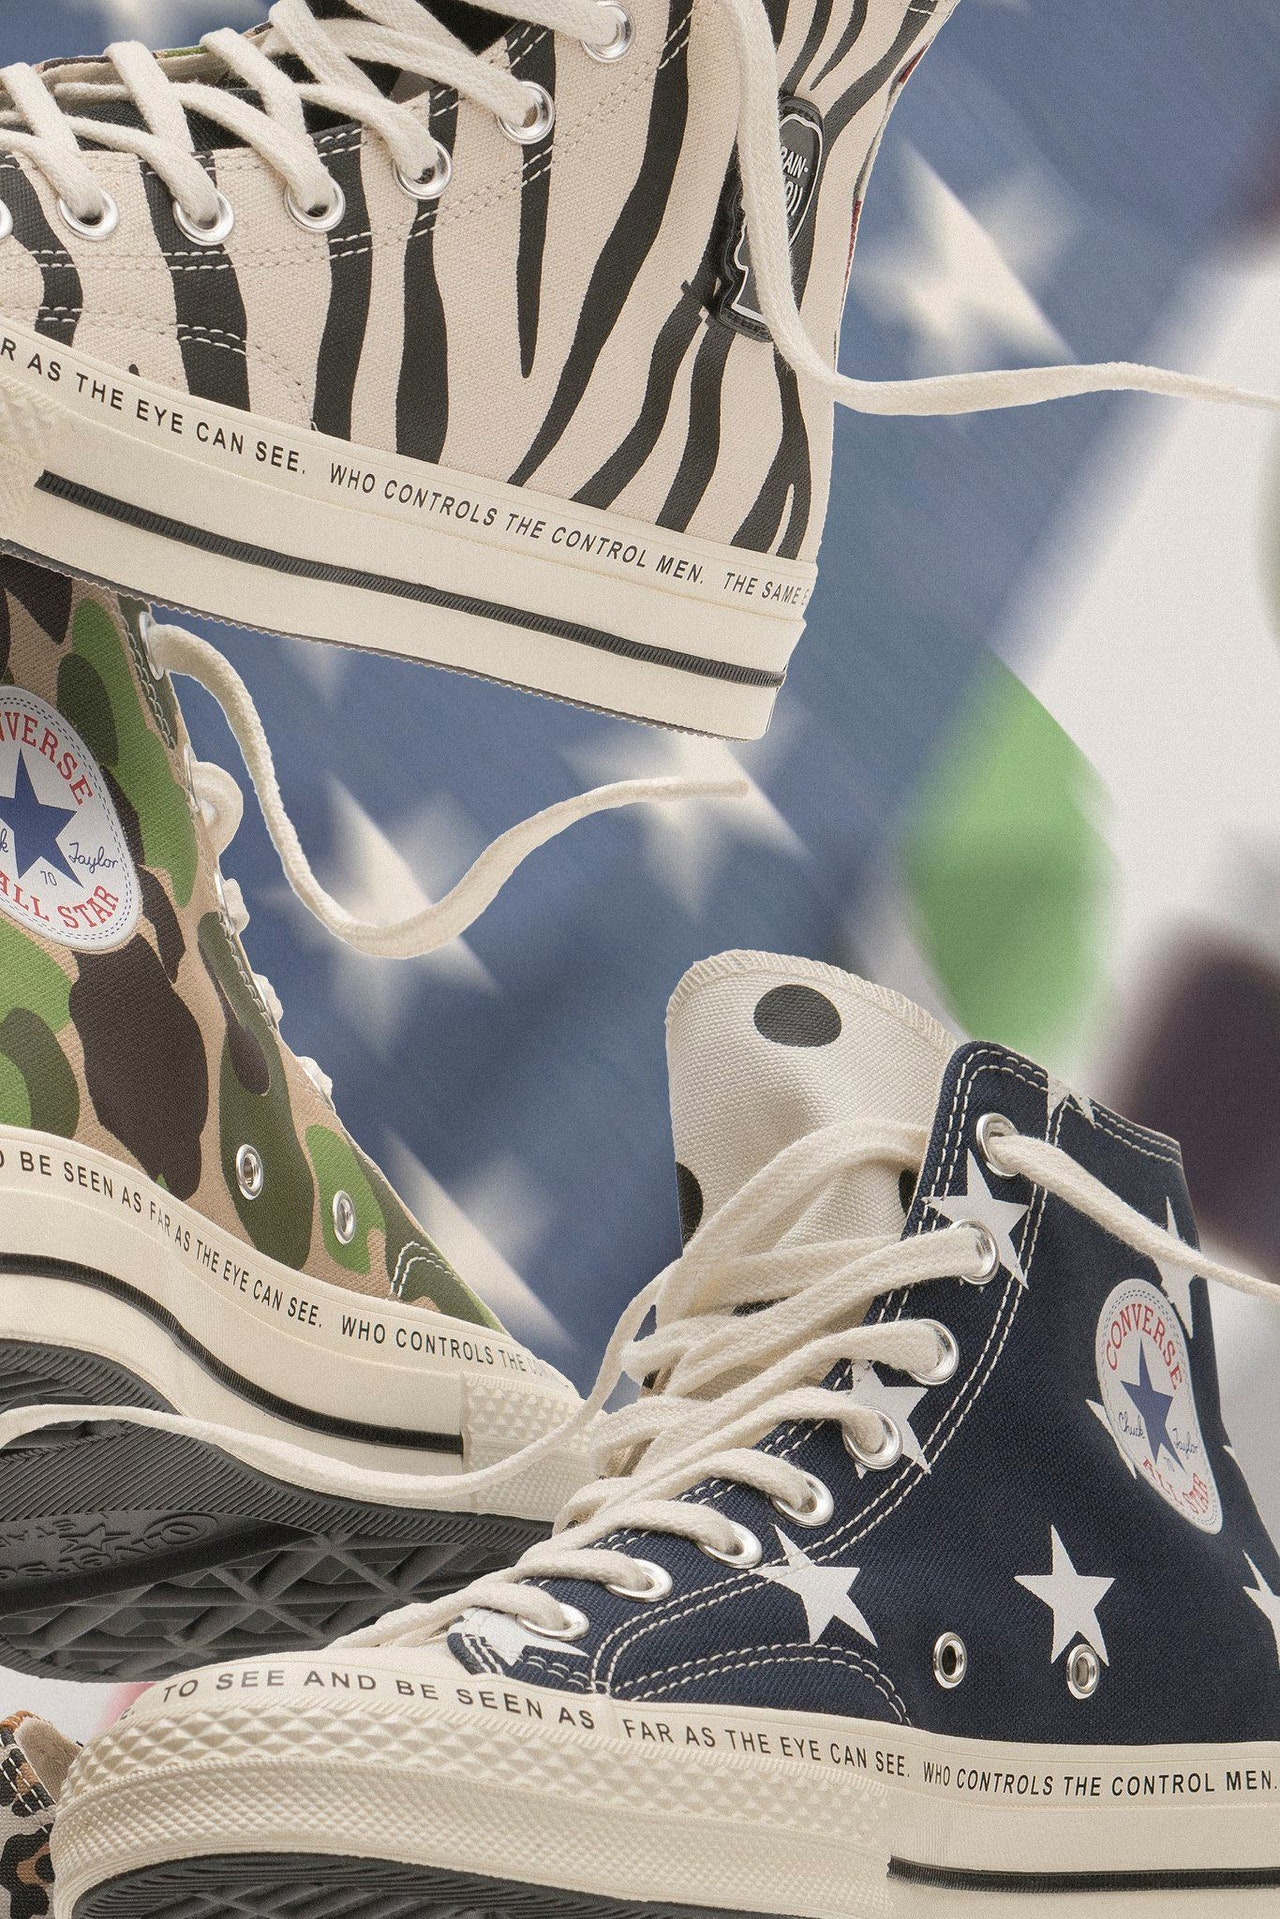 ad1fb7a2371 Following the past successes with top fashion brands like Suicoke, Vans,  Nike, Beams, and Carhartt WIP, the team is back for an all-new  collaboration with ...